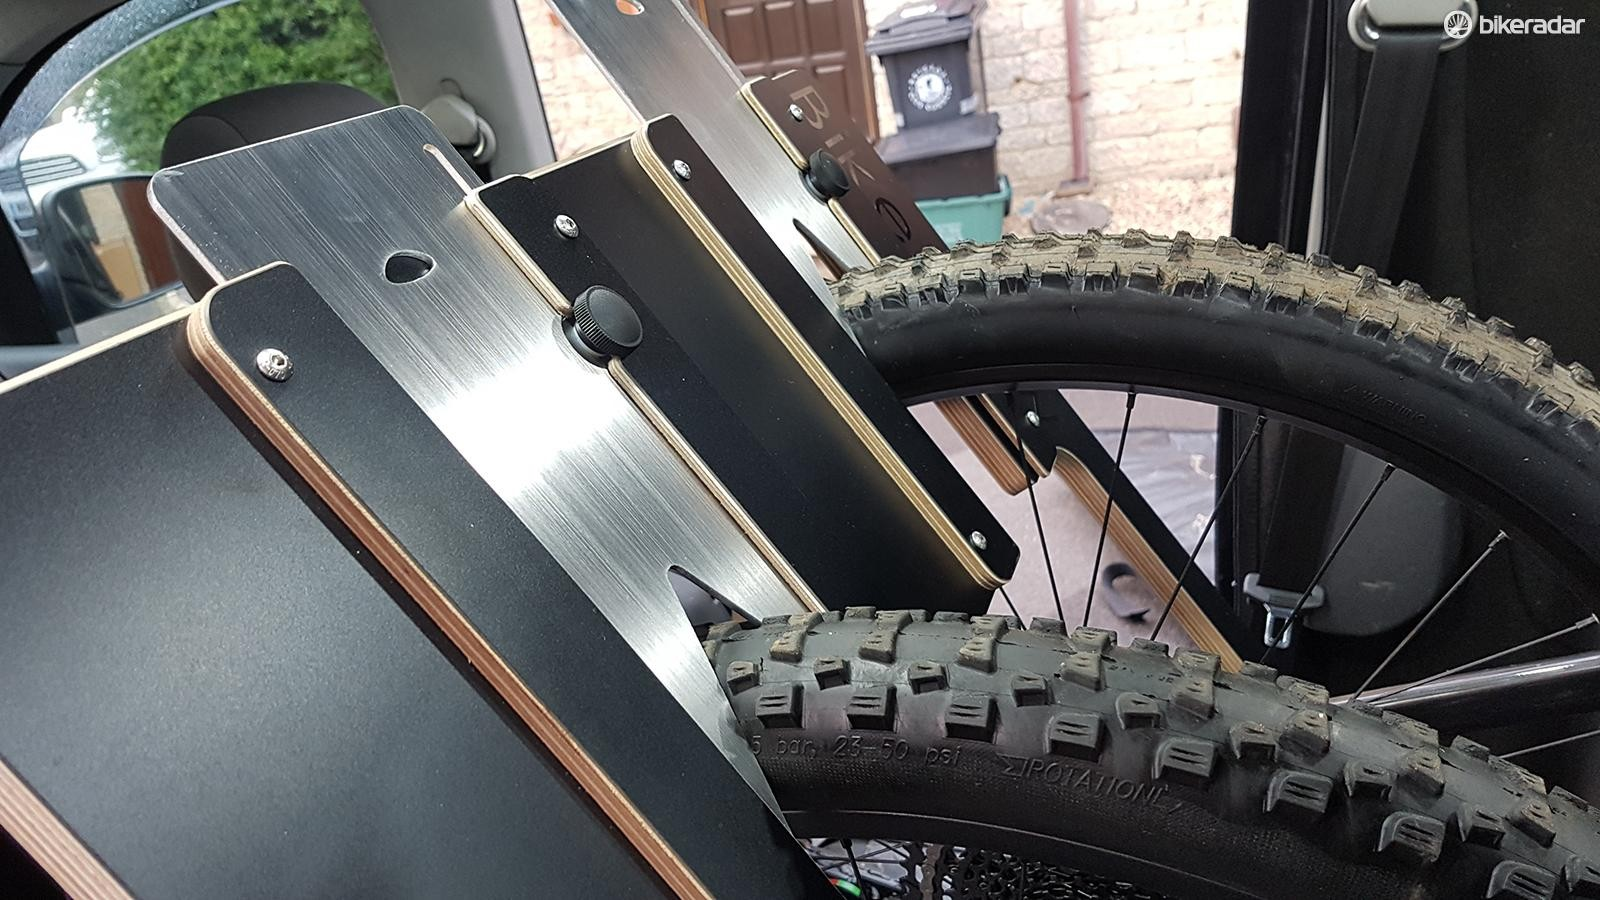 The rack supports either the front or rear wheel of your bike with a sliding aluminium slider that can take up to 27.5x3in or 29x2.4in rubber